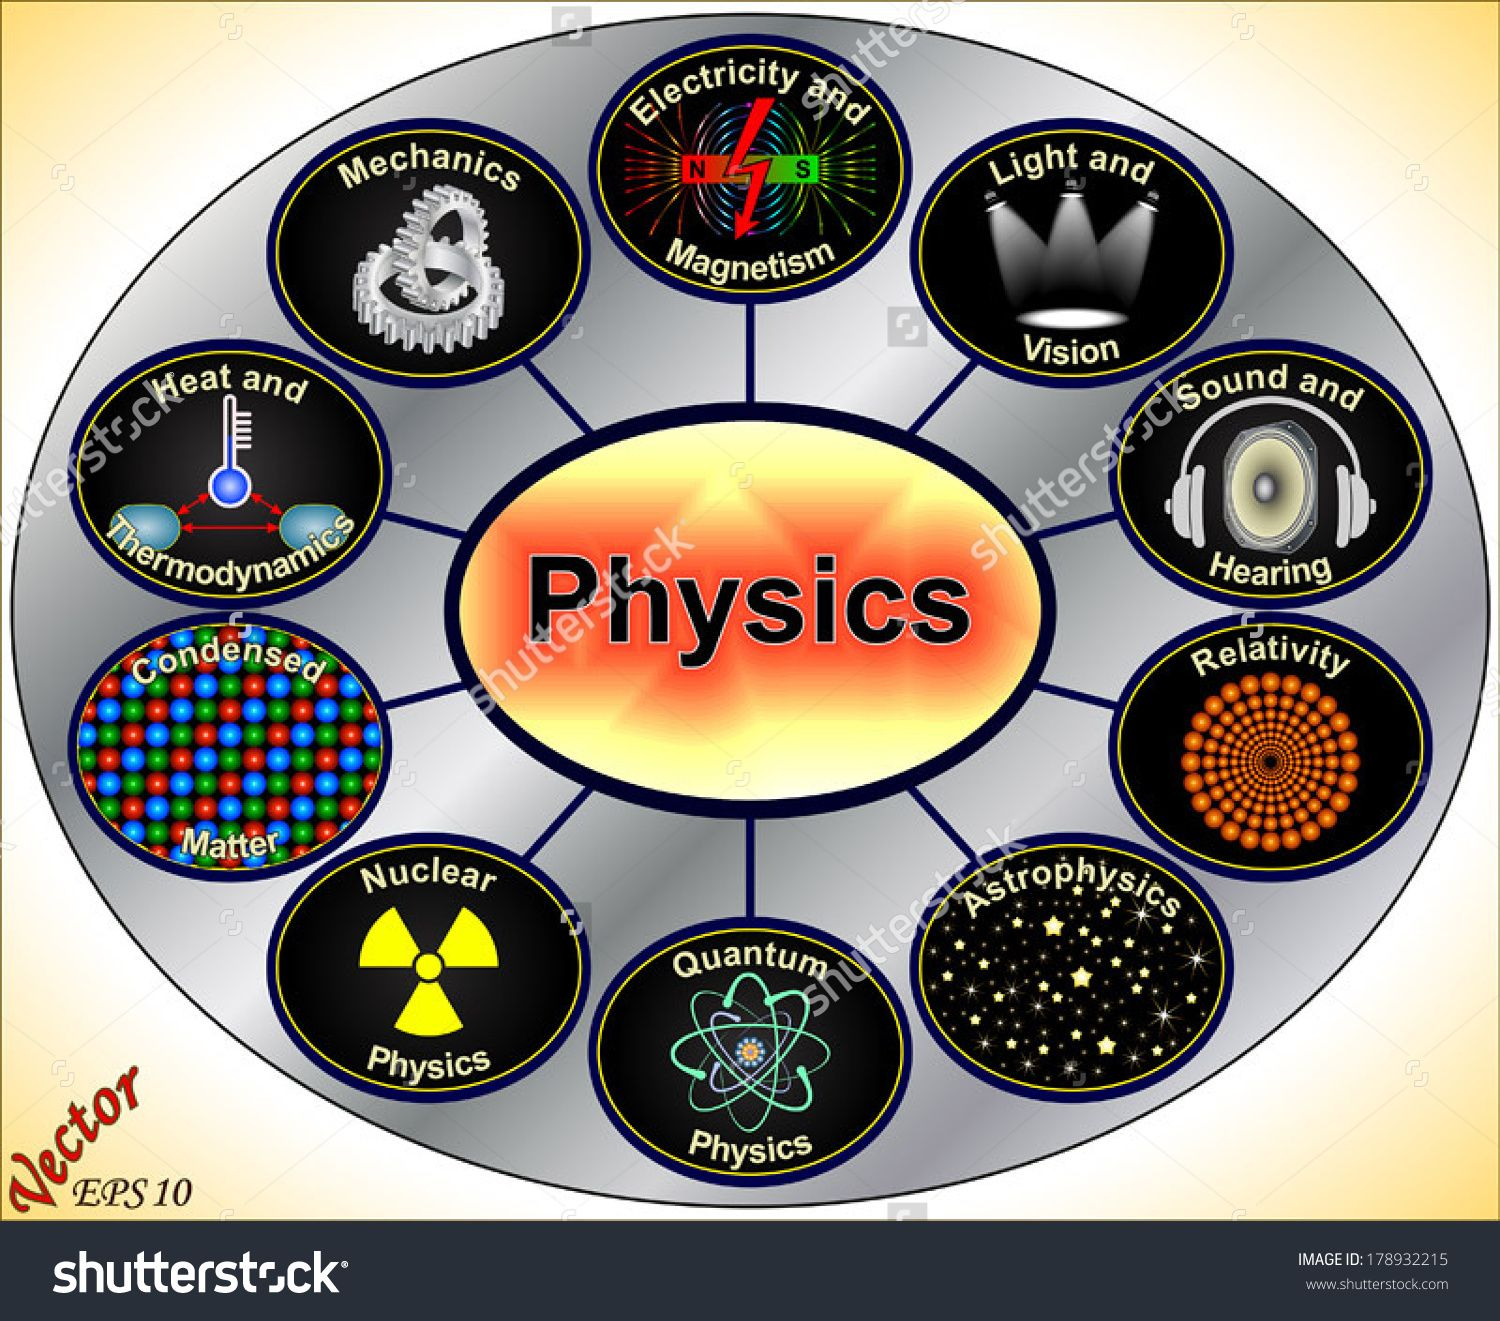 Image result for physics clipart.